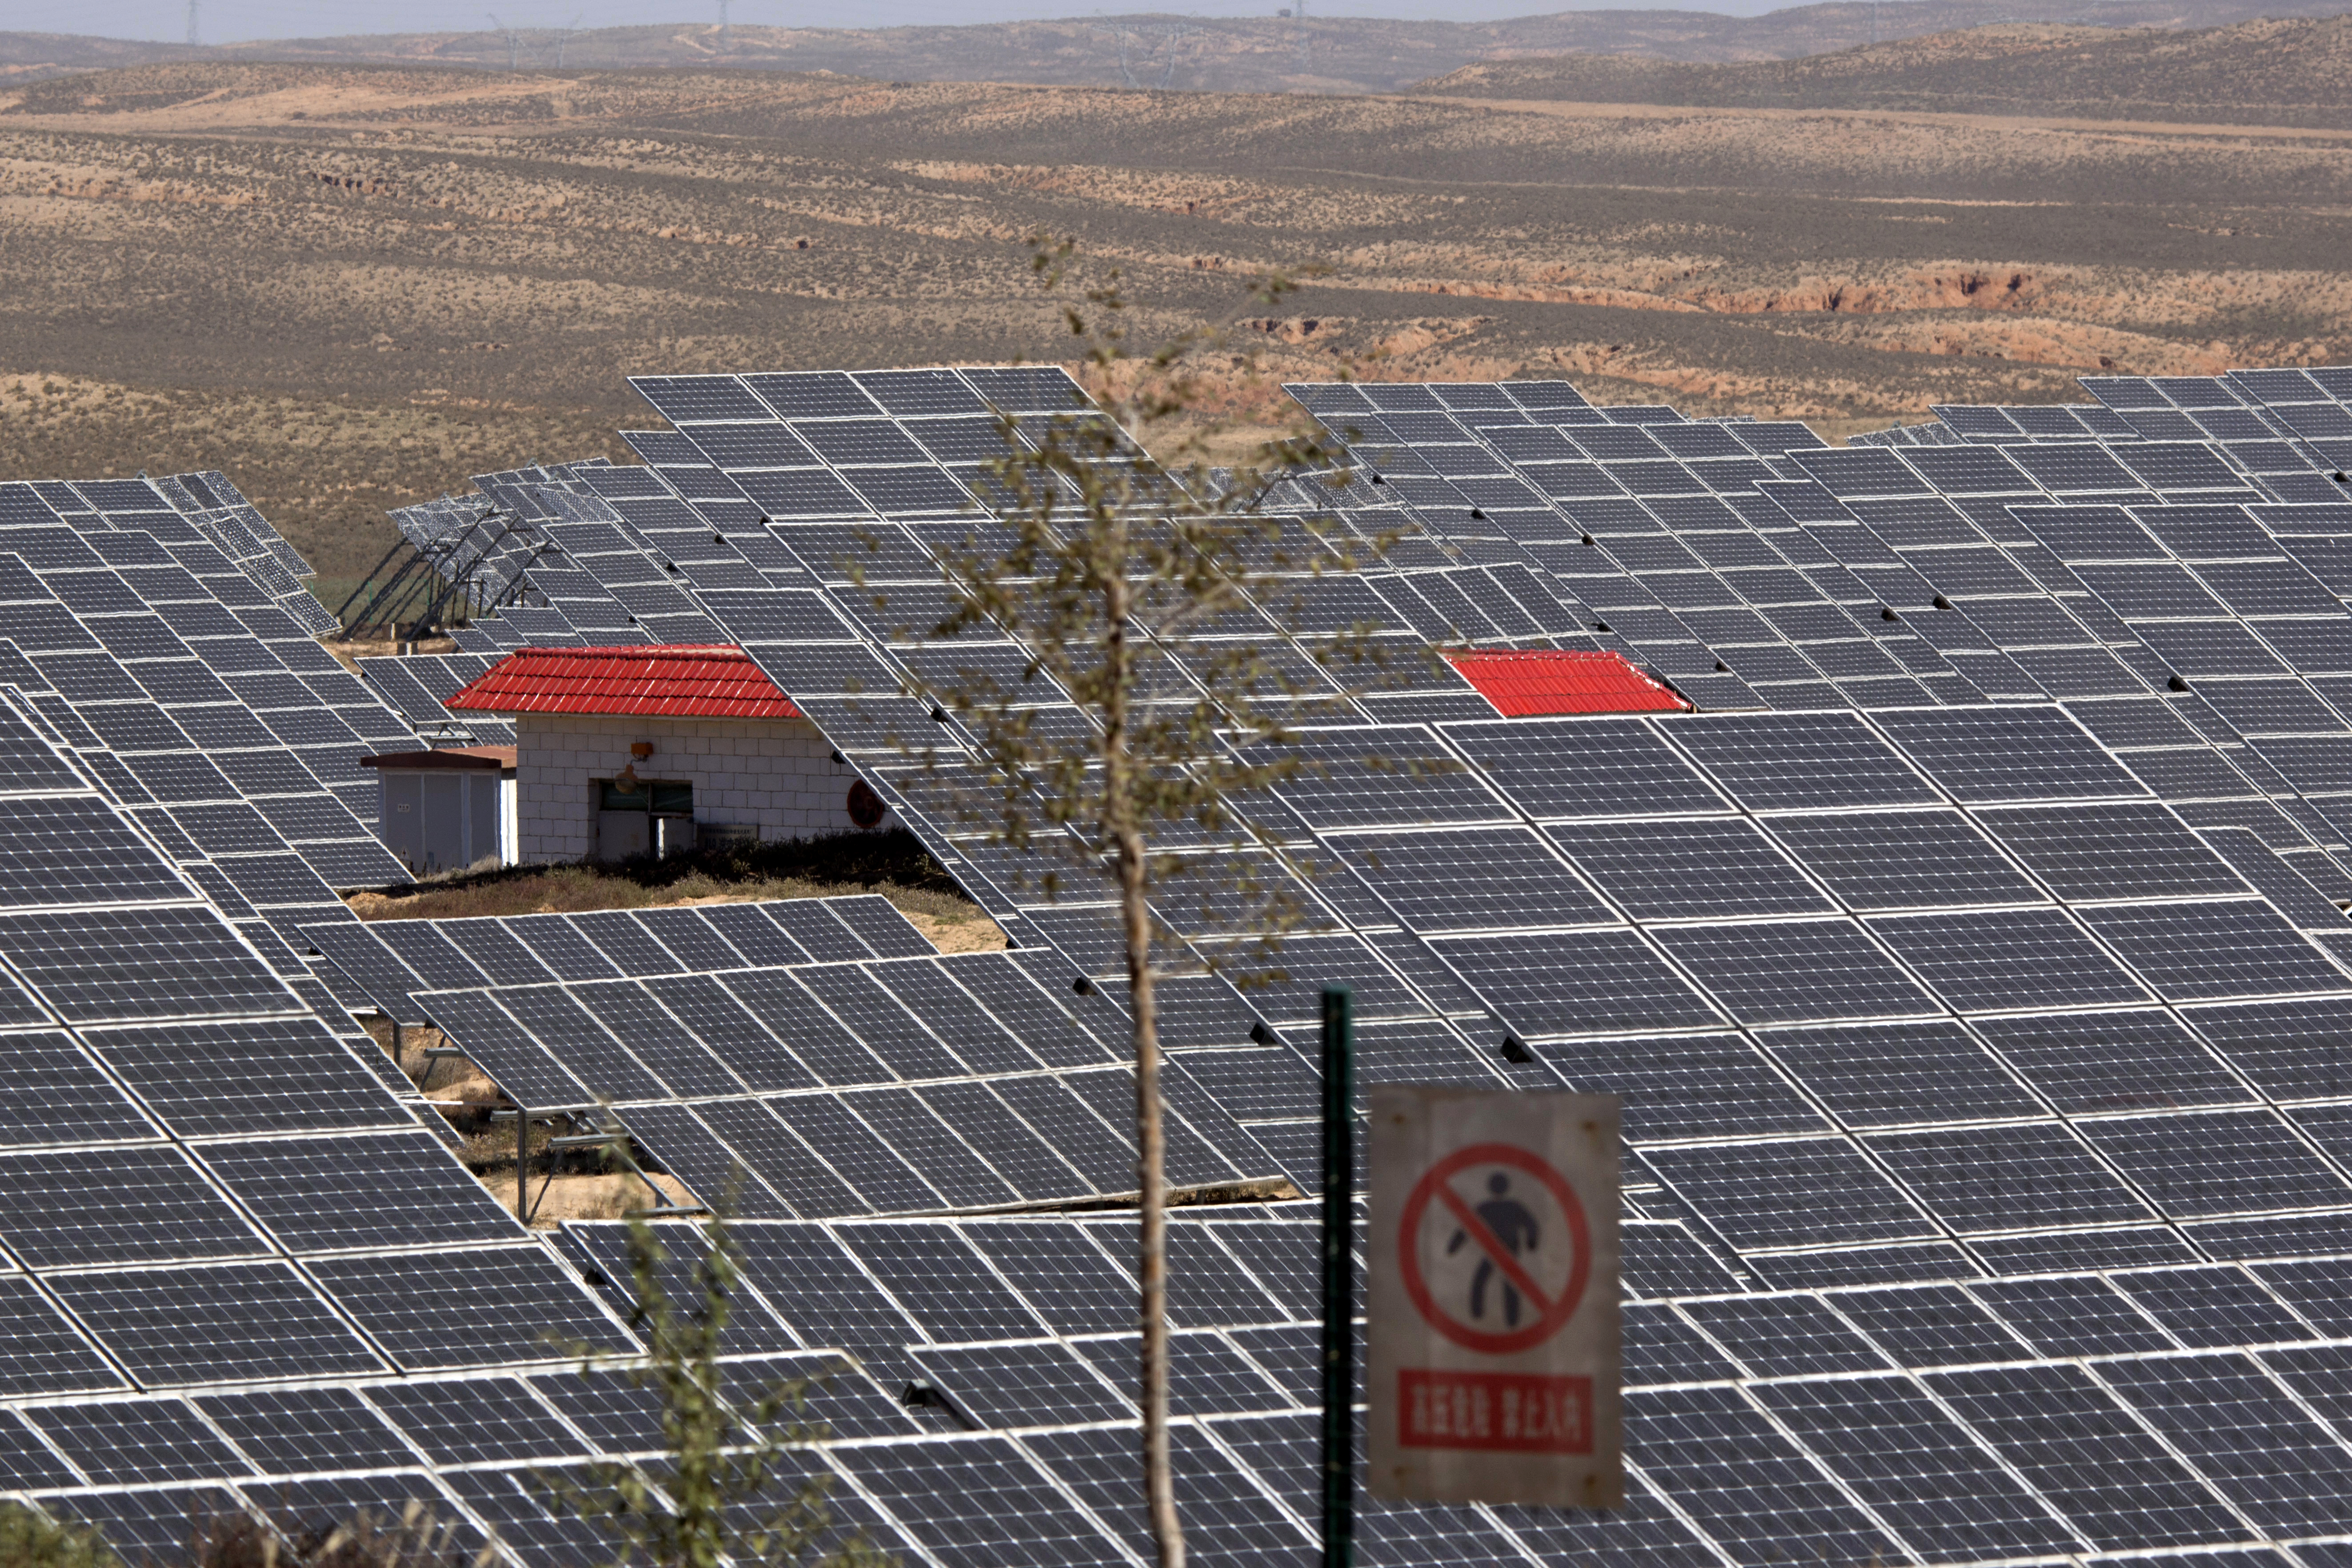 China Renewable Energy FILE - In this file photo dated Saturday, Oct. 10, 2015, an array of solar panels absorb the power of the sun, in northwestern China's Ningxia Hui autonomous region. A U.N.-backed report released Thursday March 24, 2016, says global investments in solar, wind and other sources of renewable energy reached a record $286 billion last year, and the developing world accounted for the majority of investment for the first time. (AP Photo/Ng Han Guan, FILE)